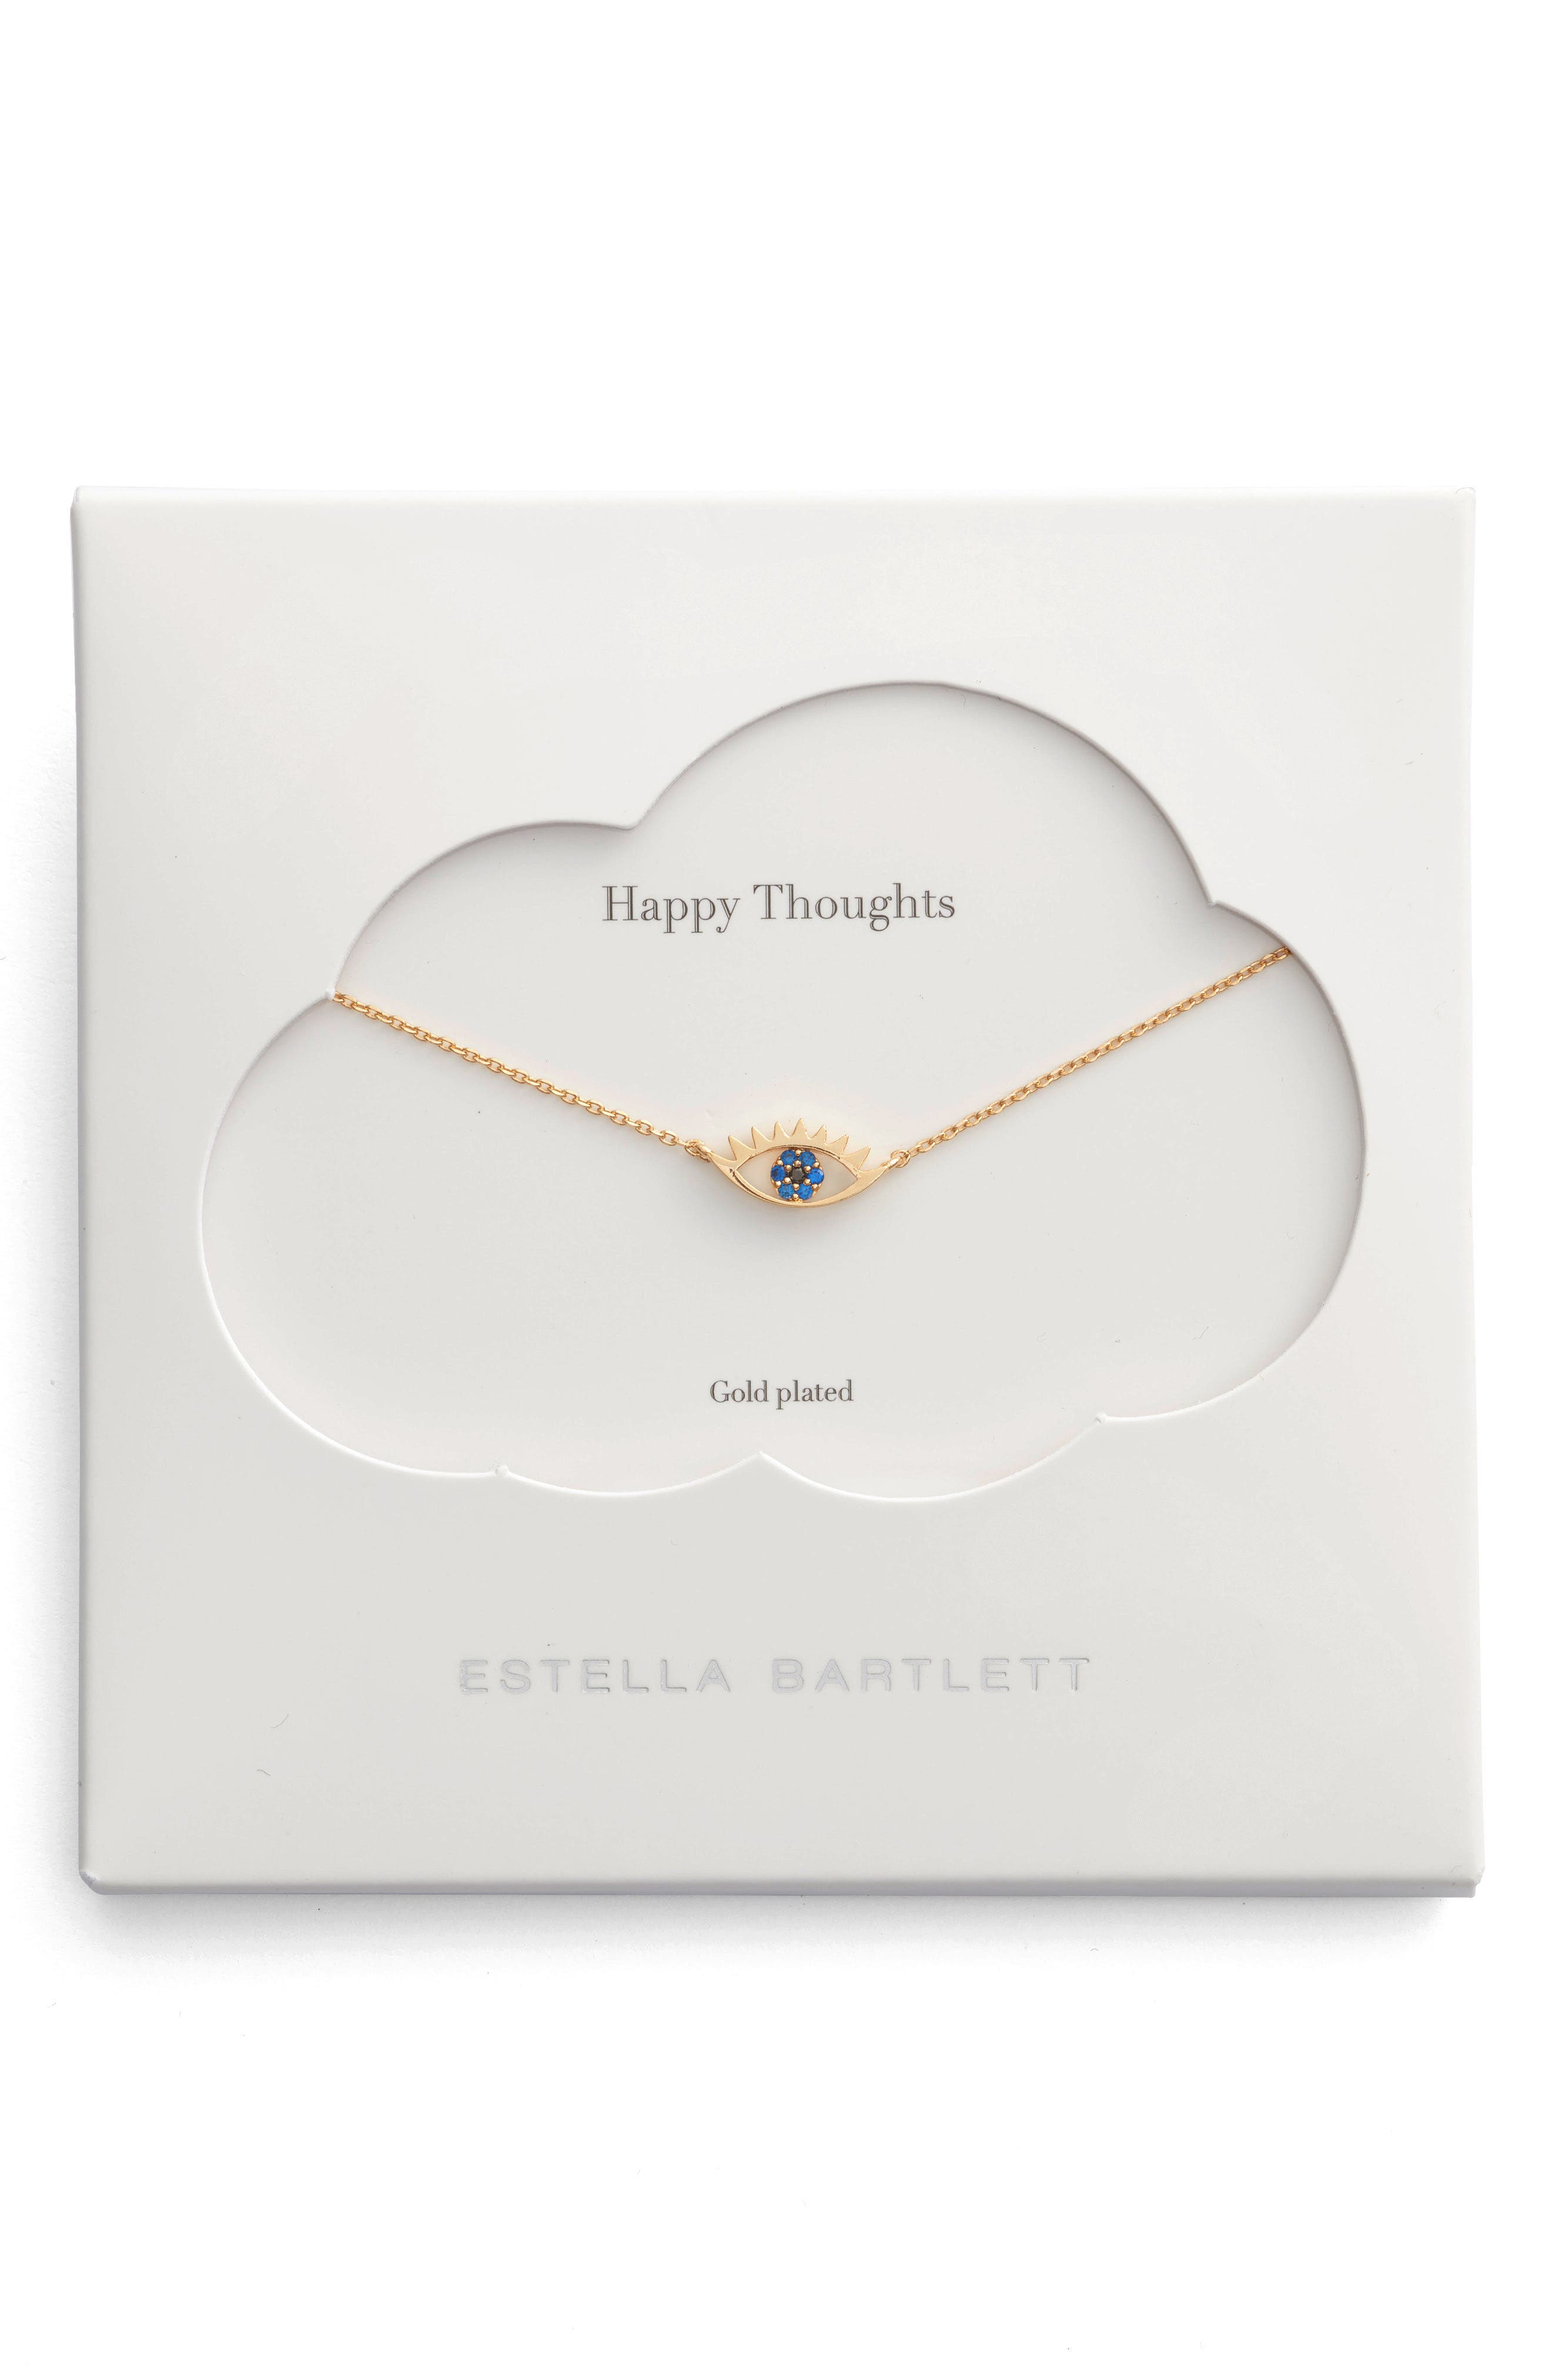 Happy Thoughts Eye Pendant Necklace,                         Main,                         color, GOLD